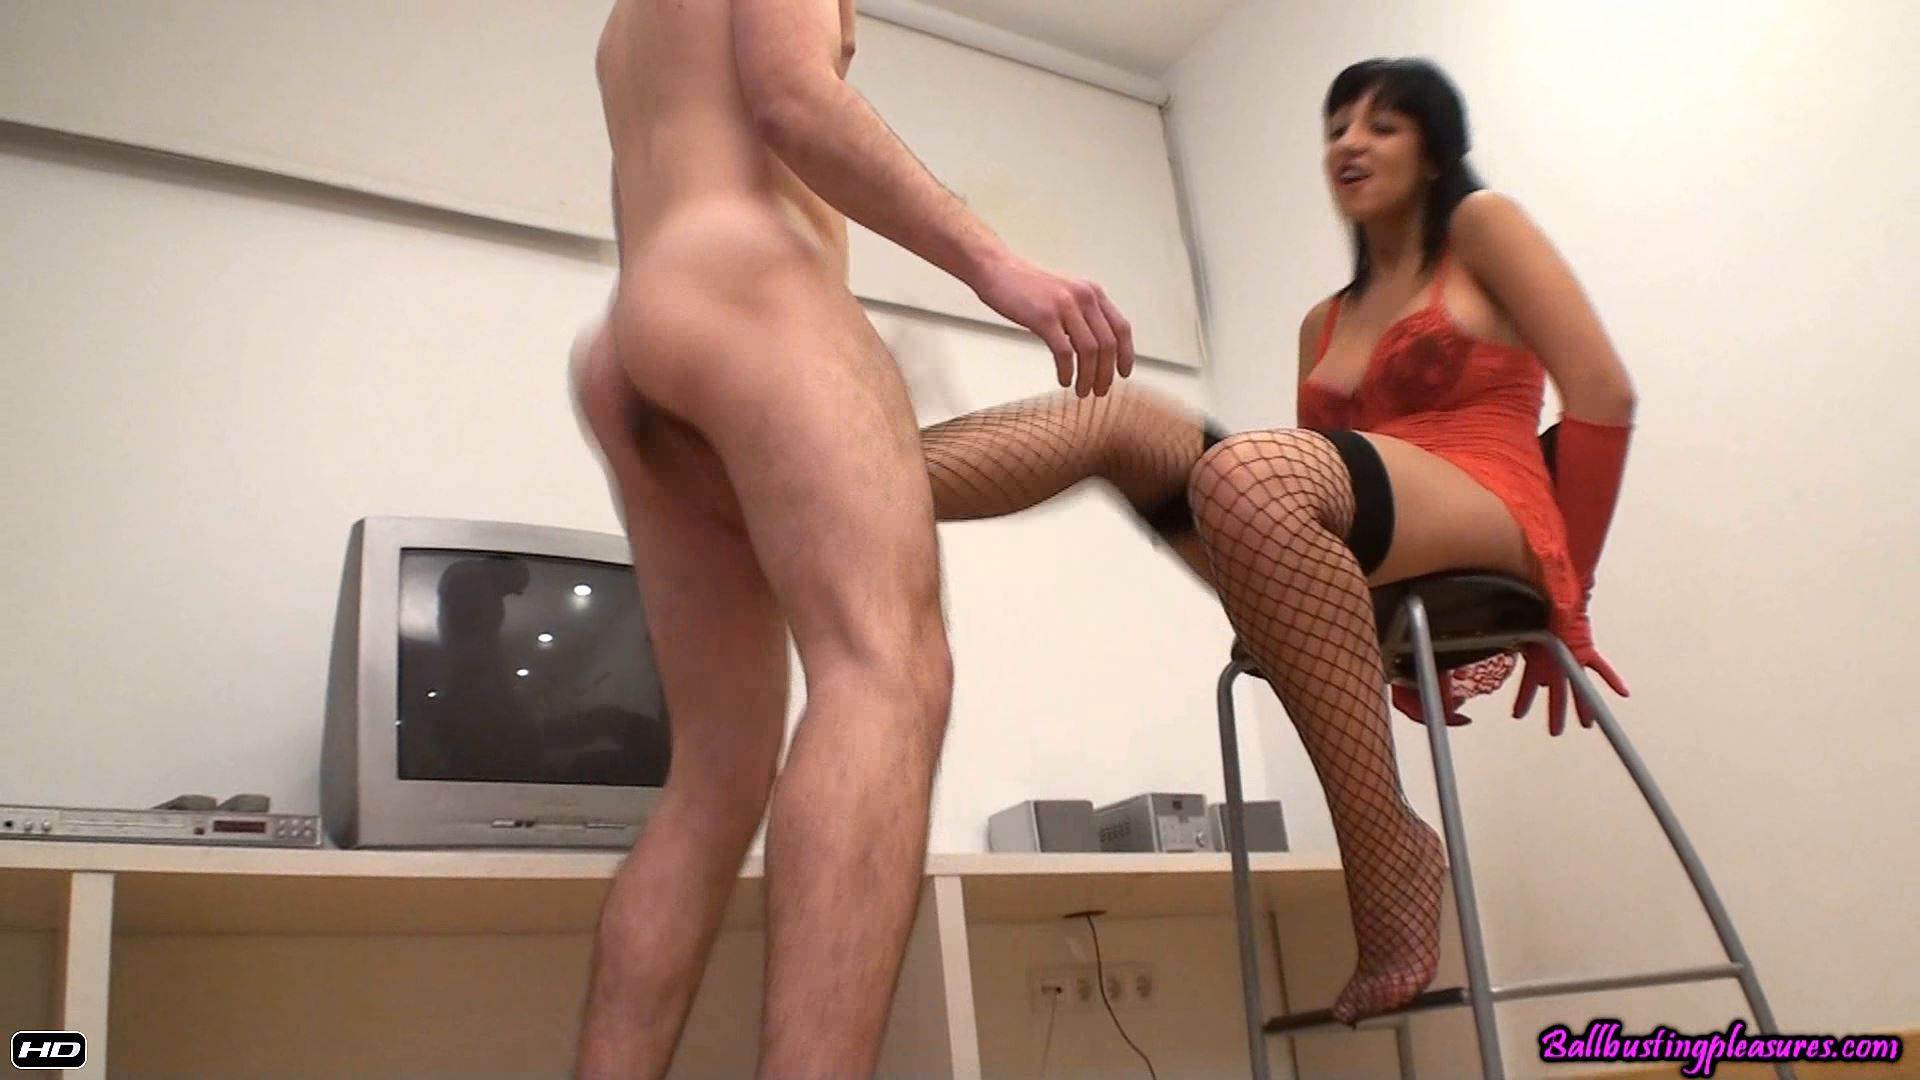 Goddess Hannah In Scene: Hard Ballbusting in Red - BALLBUSTINGPLEASURES - FULL HD/1080p/MP4